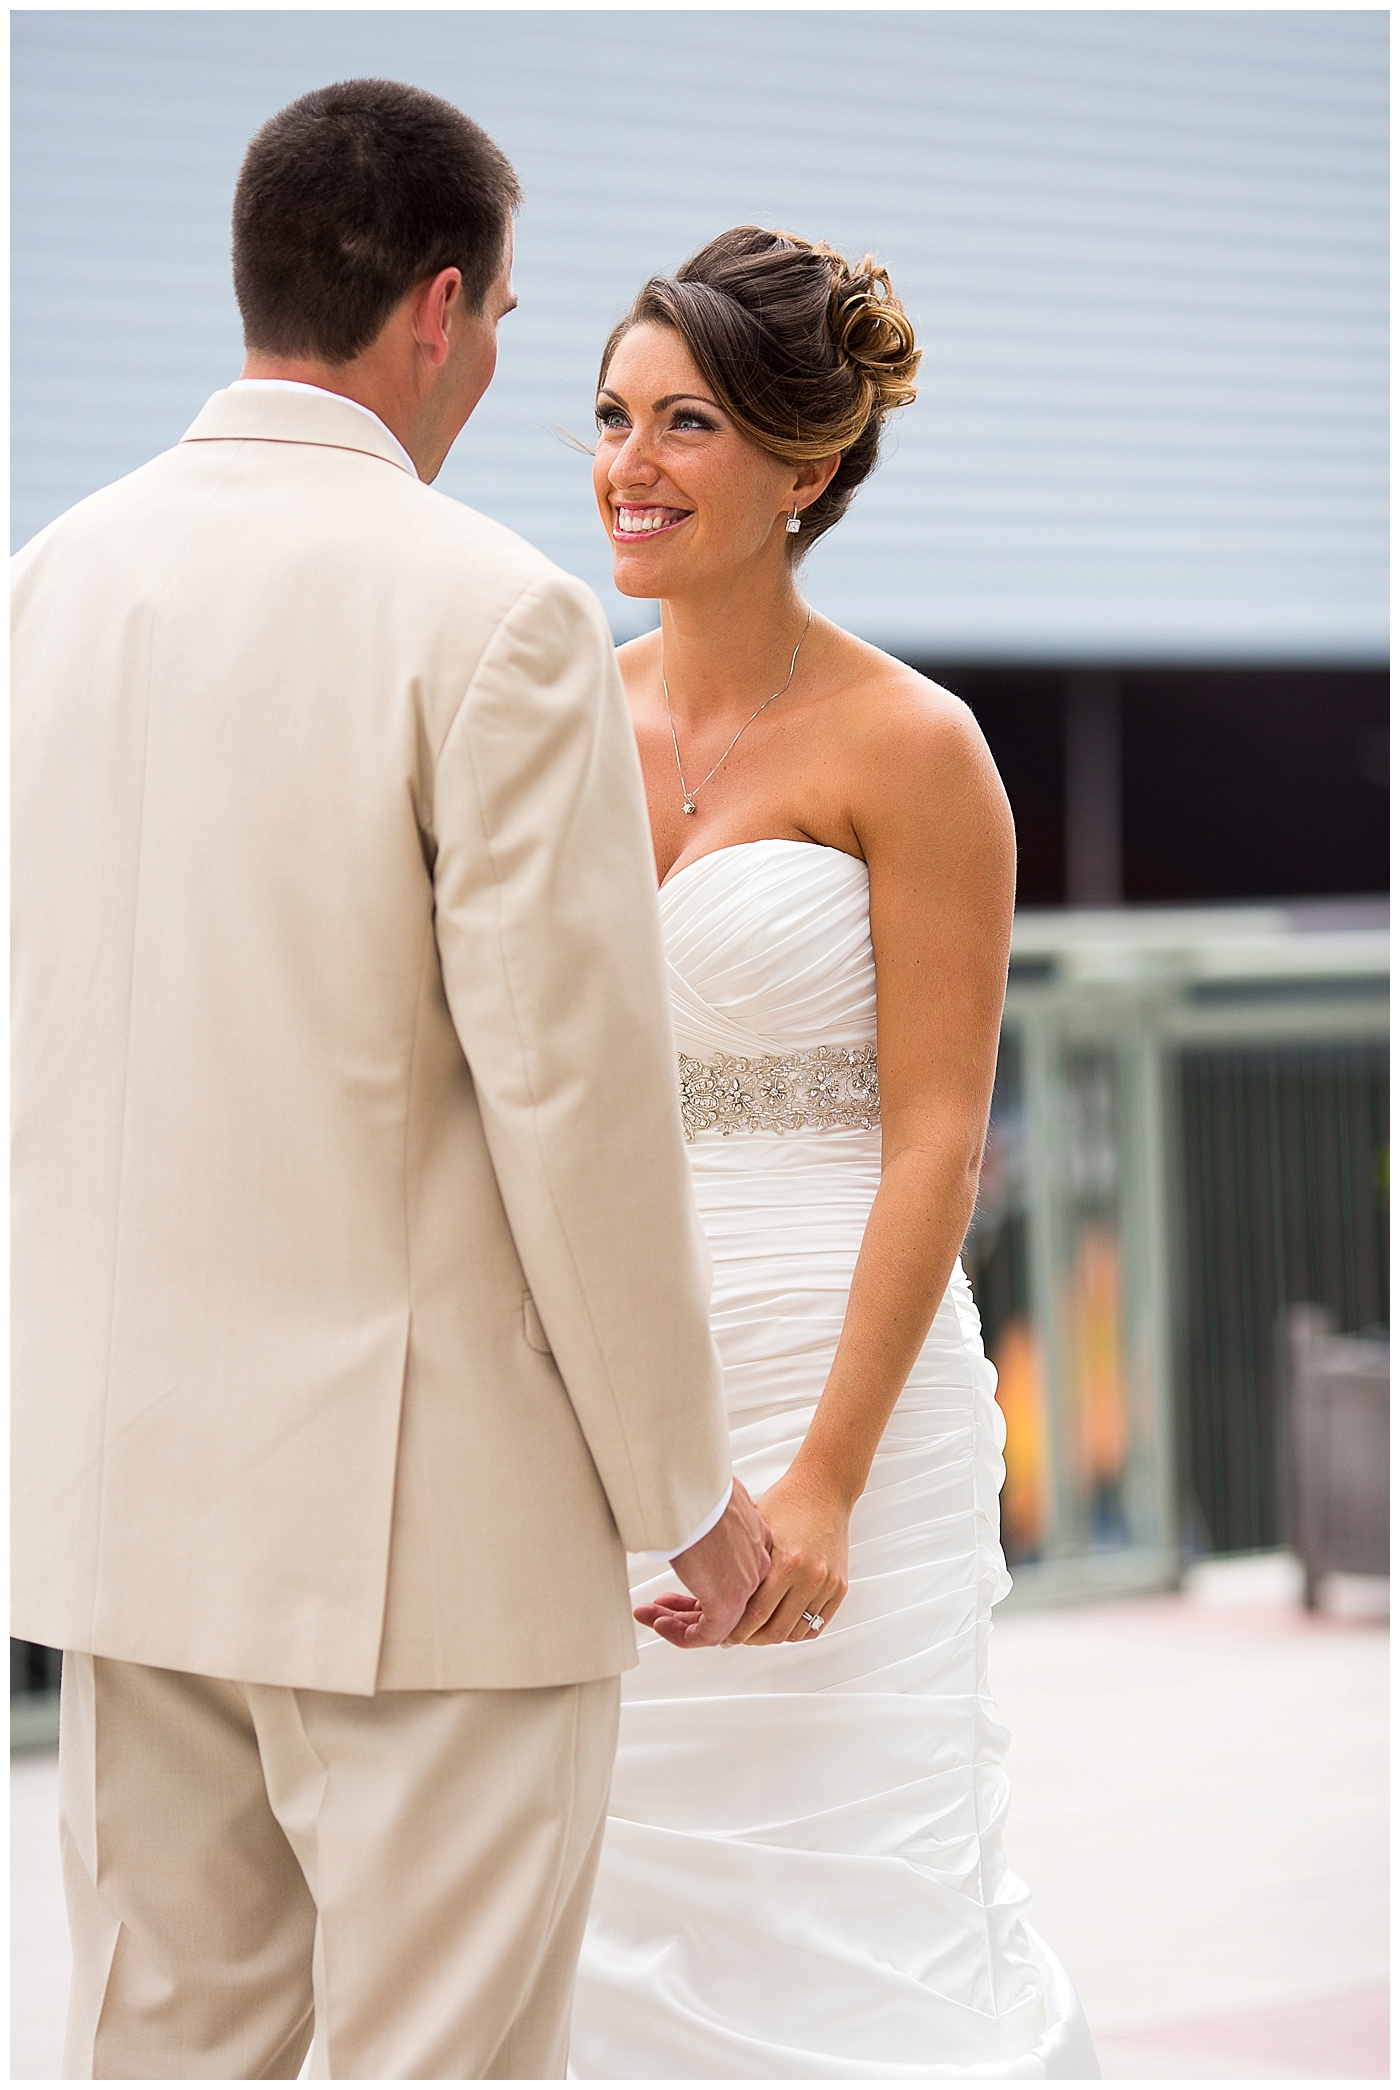 Tracey and Richard are Married!!  A Half Moone Cruise and Celebration Center wedding in Norfolk